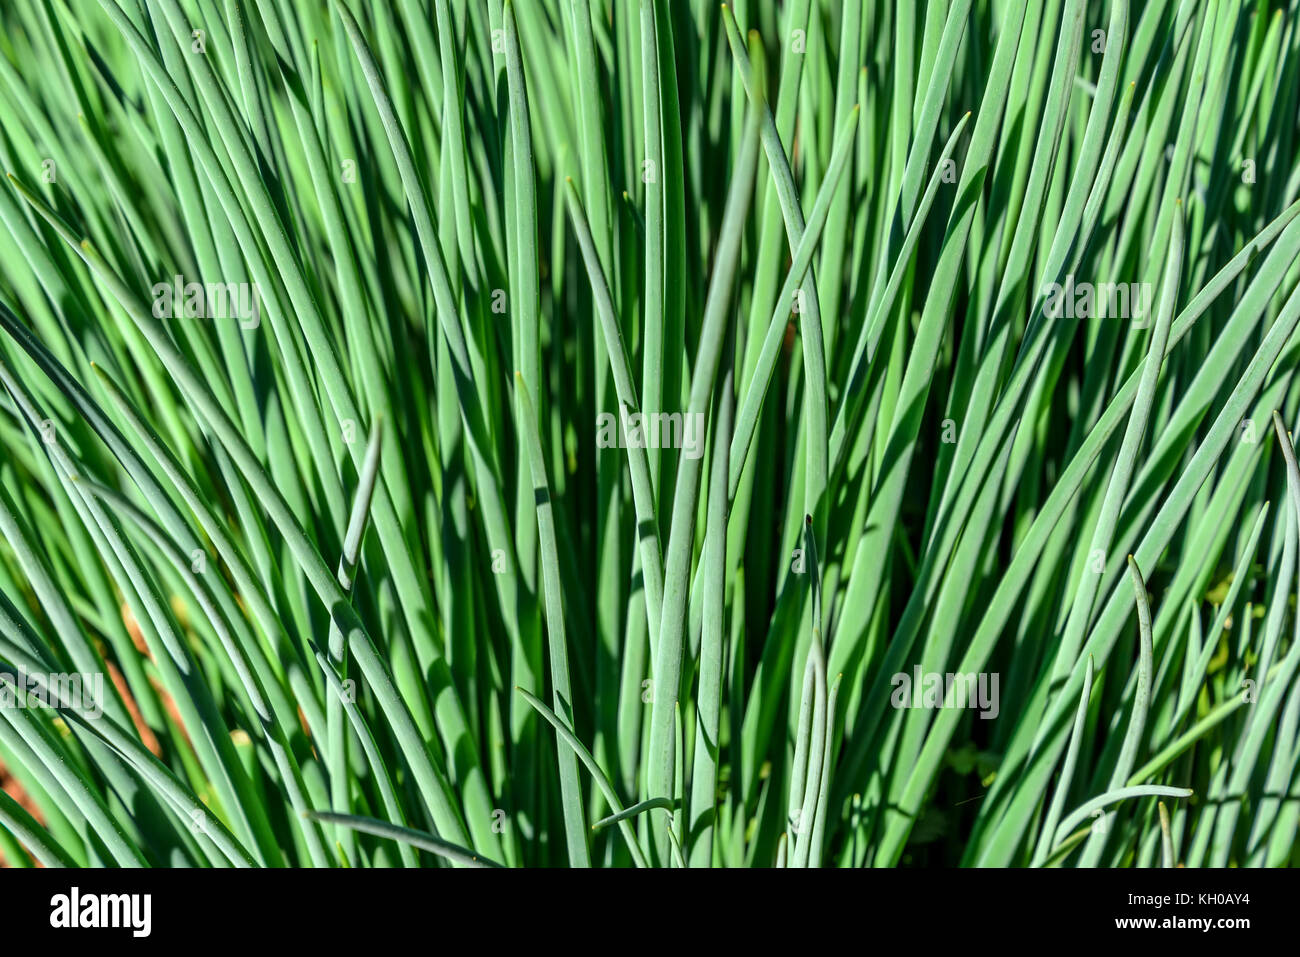 Feathers Bed Stock Photos & Feathers Bed Stock Images - Alamy